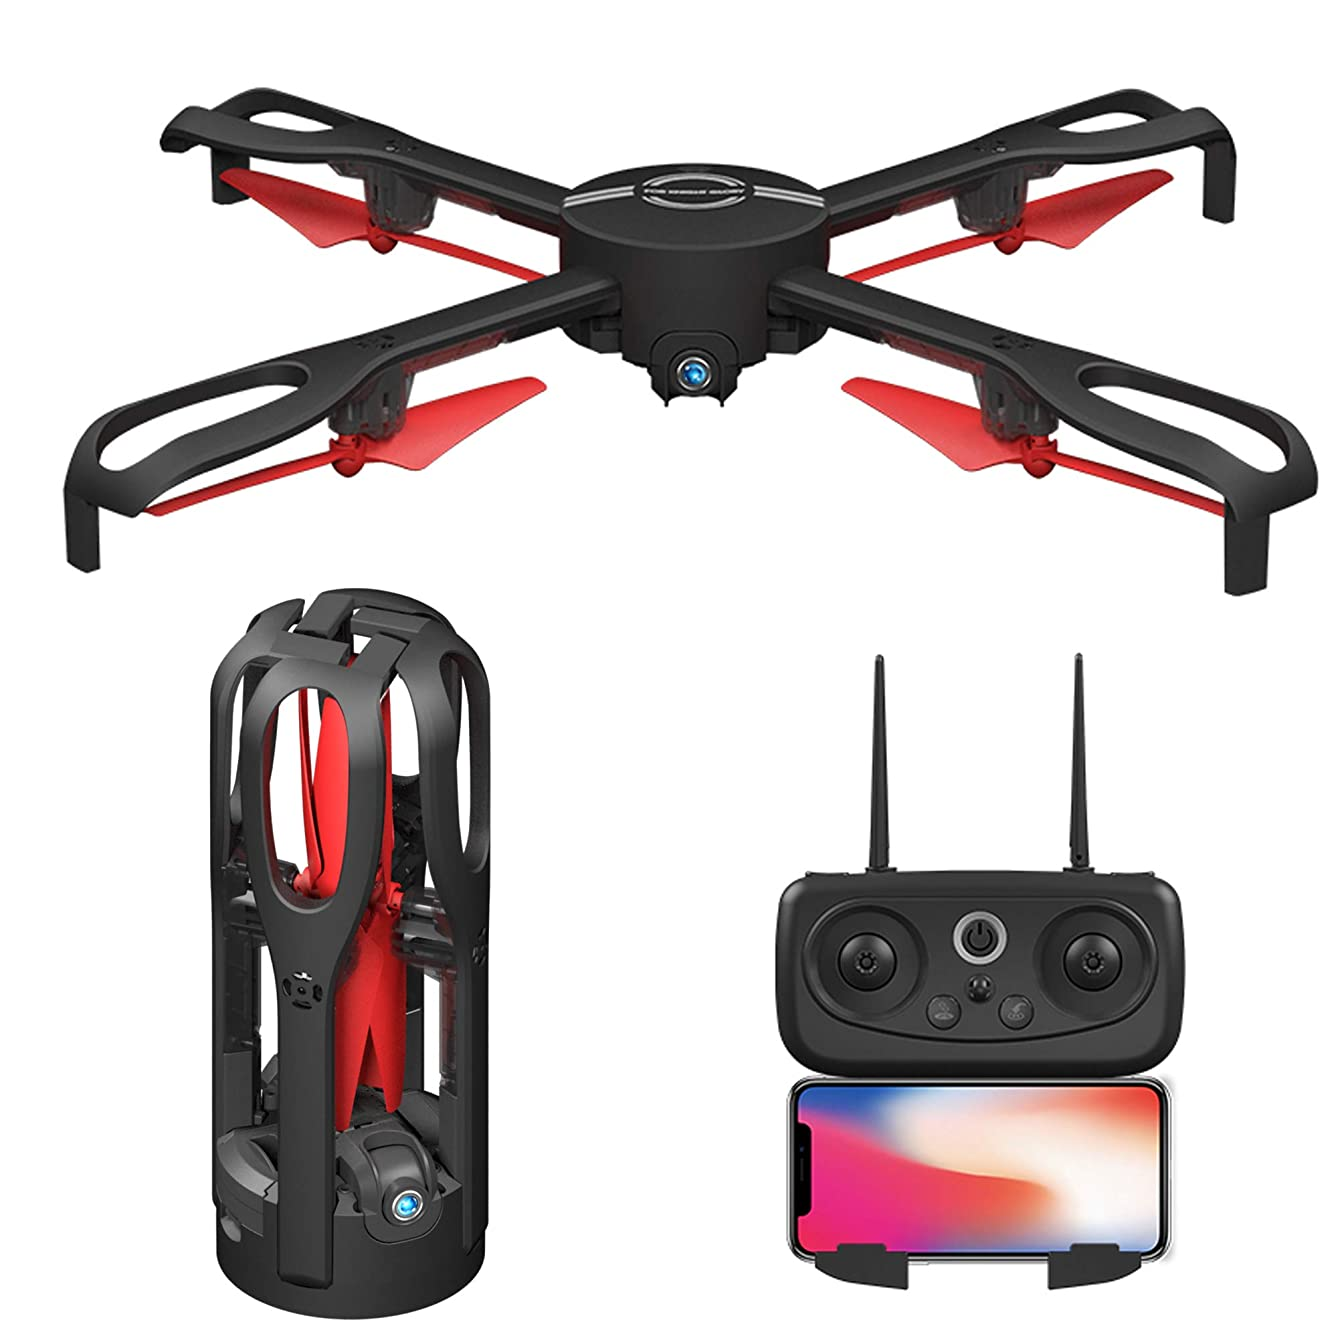 GPS Foldable RC Drone with Camera Live Video 1080P WiFi 5G FPV Quadcopters,Black 2.4GHz 4CH 6-Axis Gyro, Gravity Sensing, Headless Mode, Follow Me